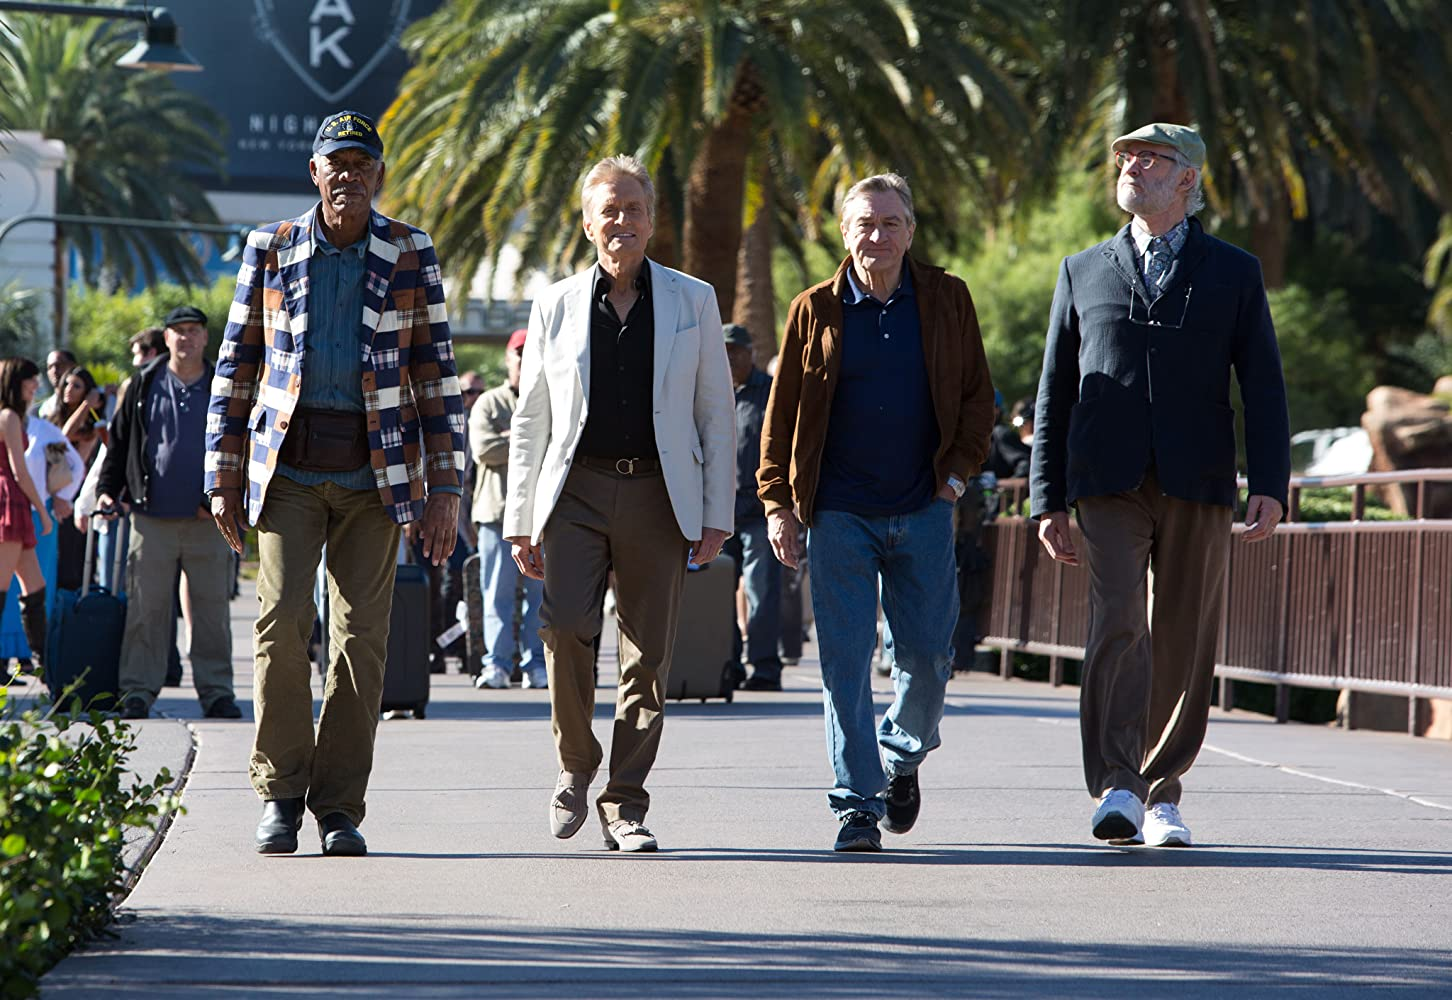 Robert De Niro, Michael Douglas, Morgan Freeman, and Kevin Kline in Last Vegas (2013)